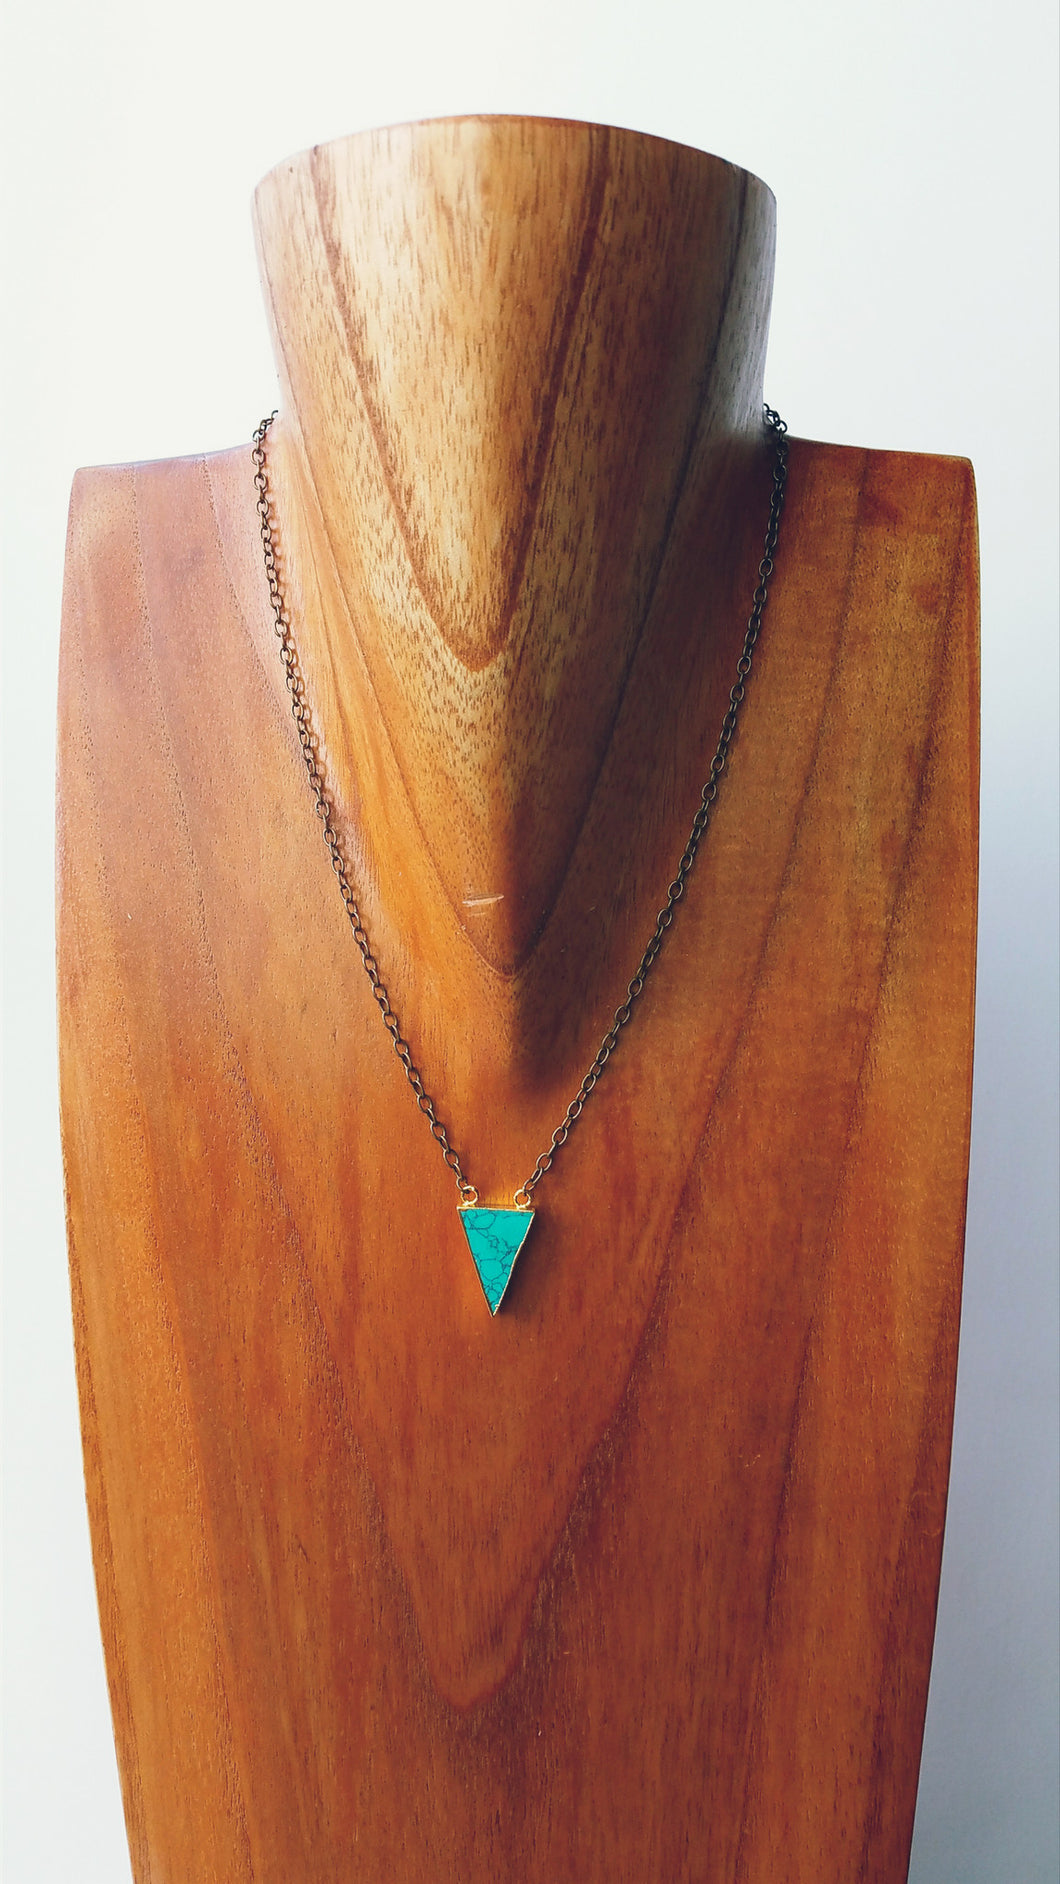 Sequoyah Necklace